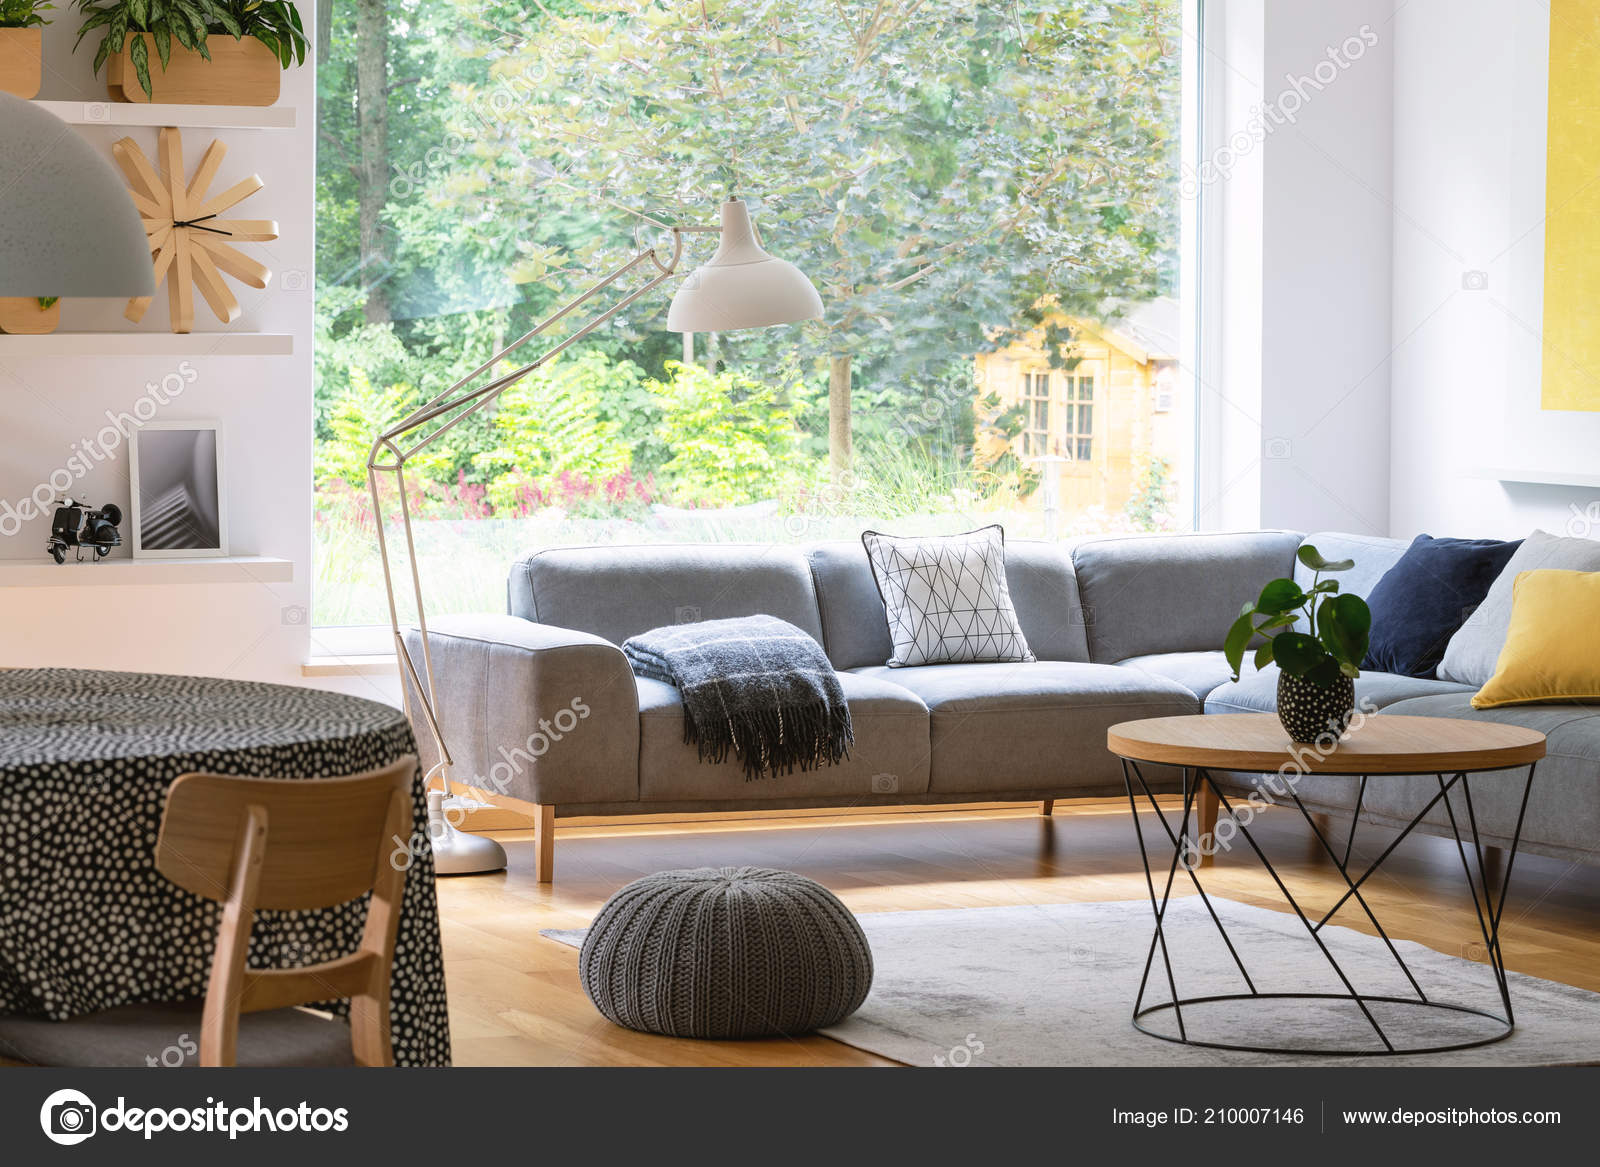 Surprising Pouf Next Table Modern Living Room Interior Grey Corner Sofa Uwap Interior Chair Design Uwaporg